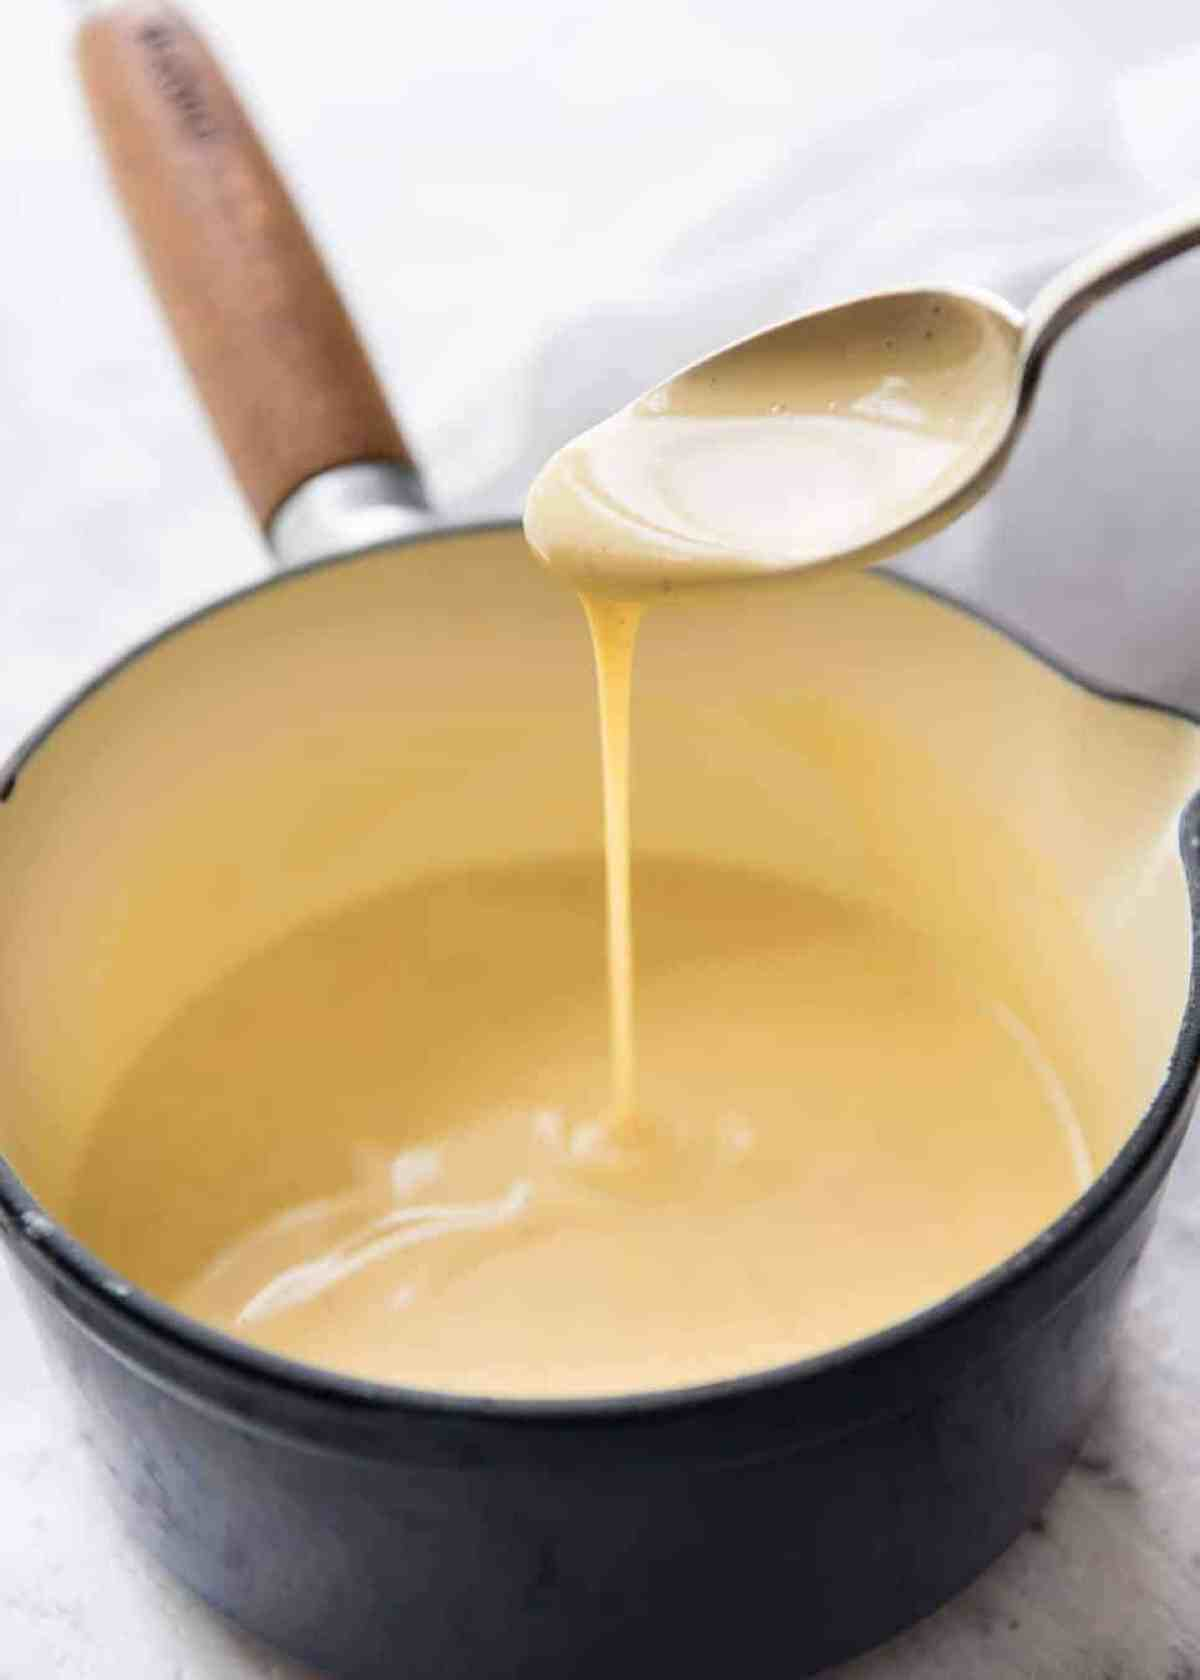 A classic, easy custard made using only egg as the thickener, no cornflour. Also known as Creme Anglaise, this is rich and stunning! www.recipetineats.com